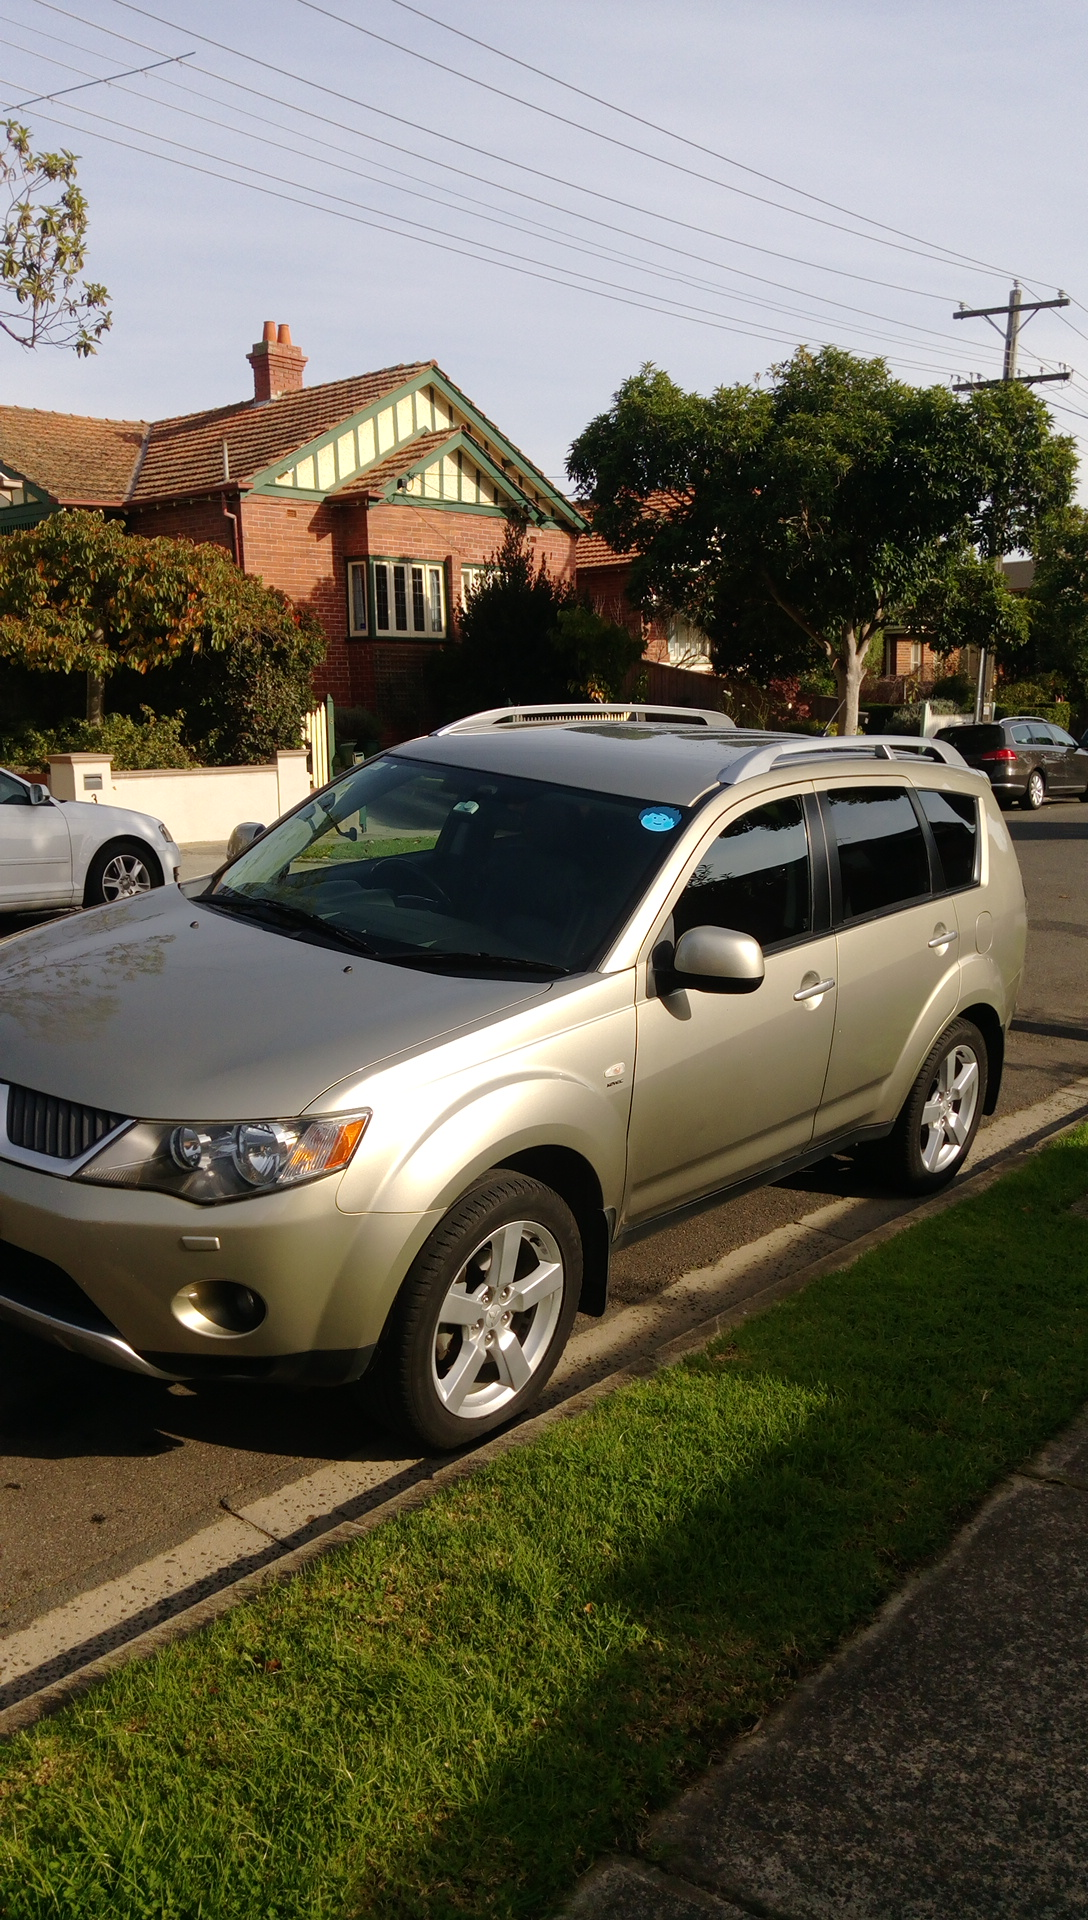 Picture of Javier's 2007 Mitsubishi Outlander